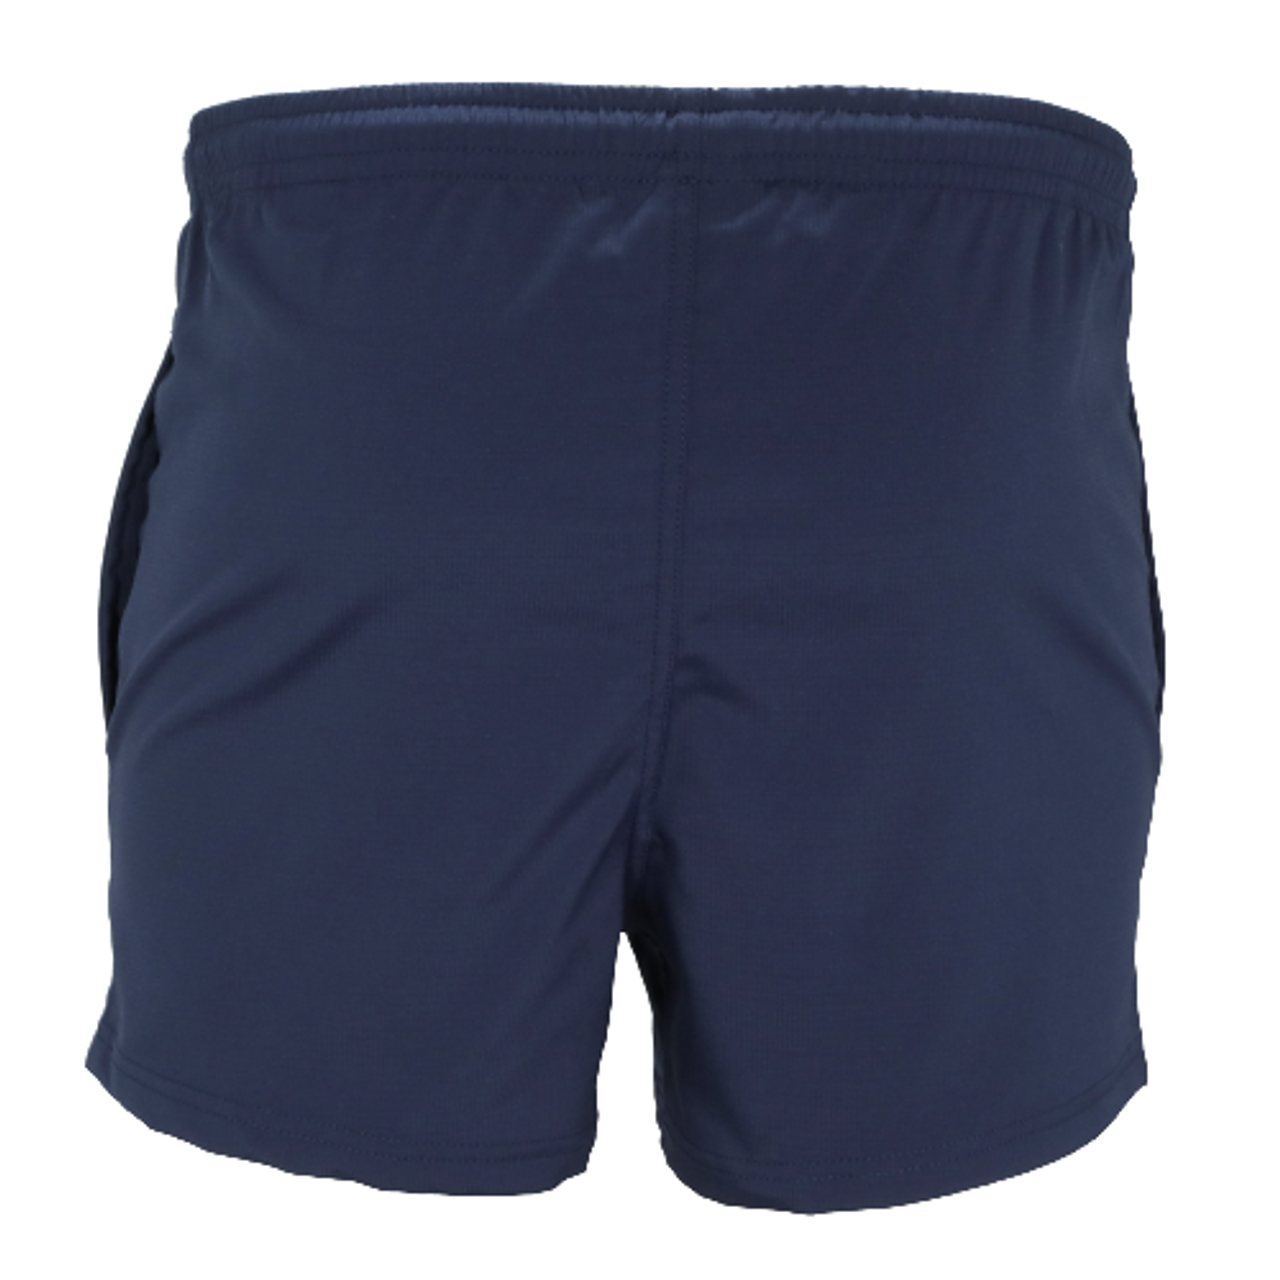 NYSRRS Pocketed Performance Rugby Shorts, Navy